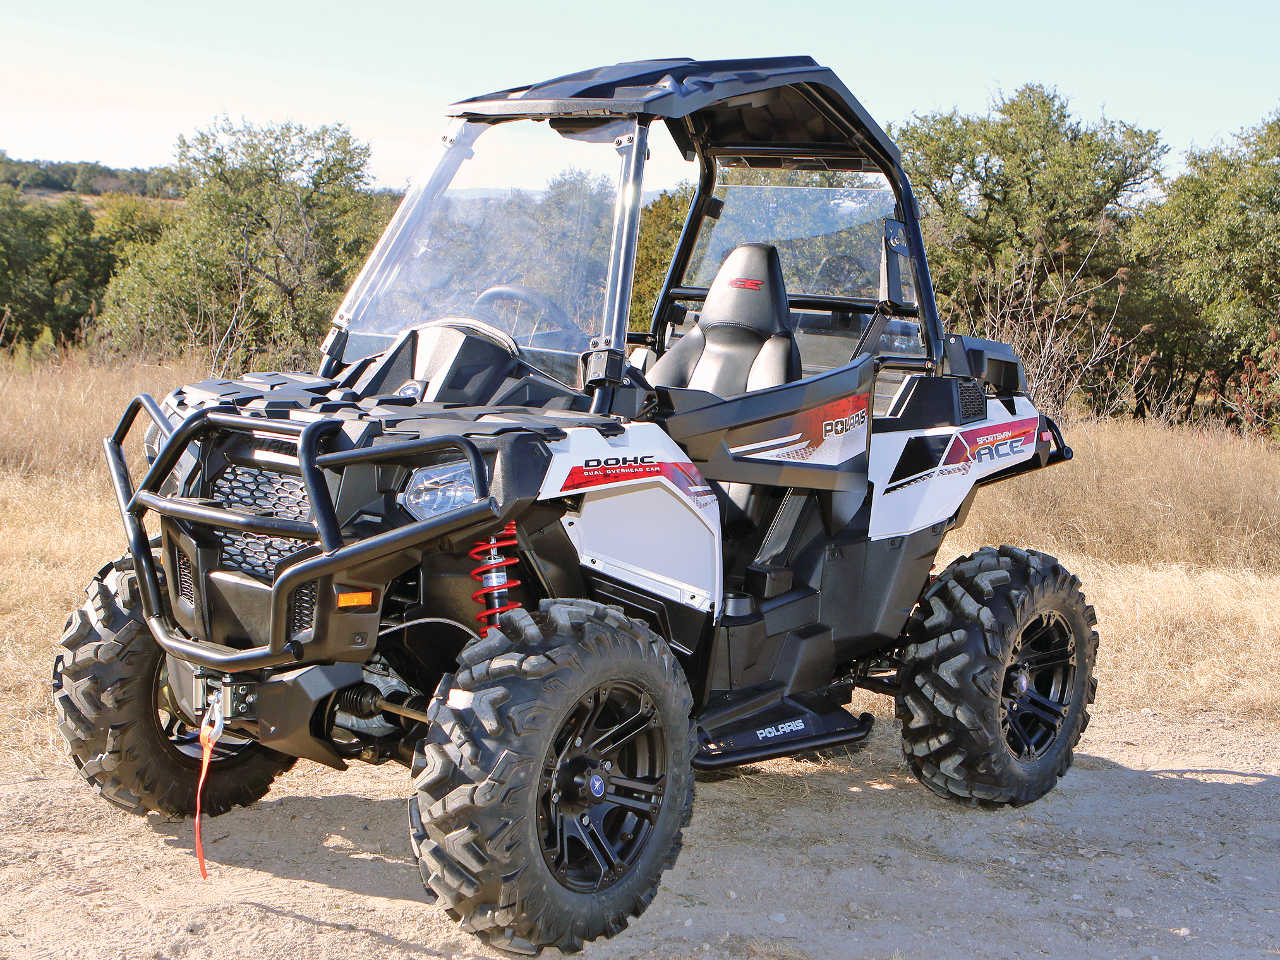 2015 polaris ace reviews